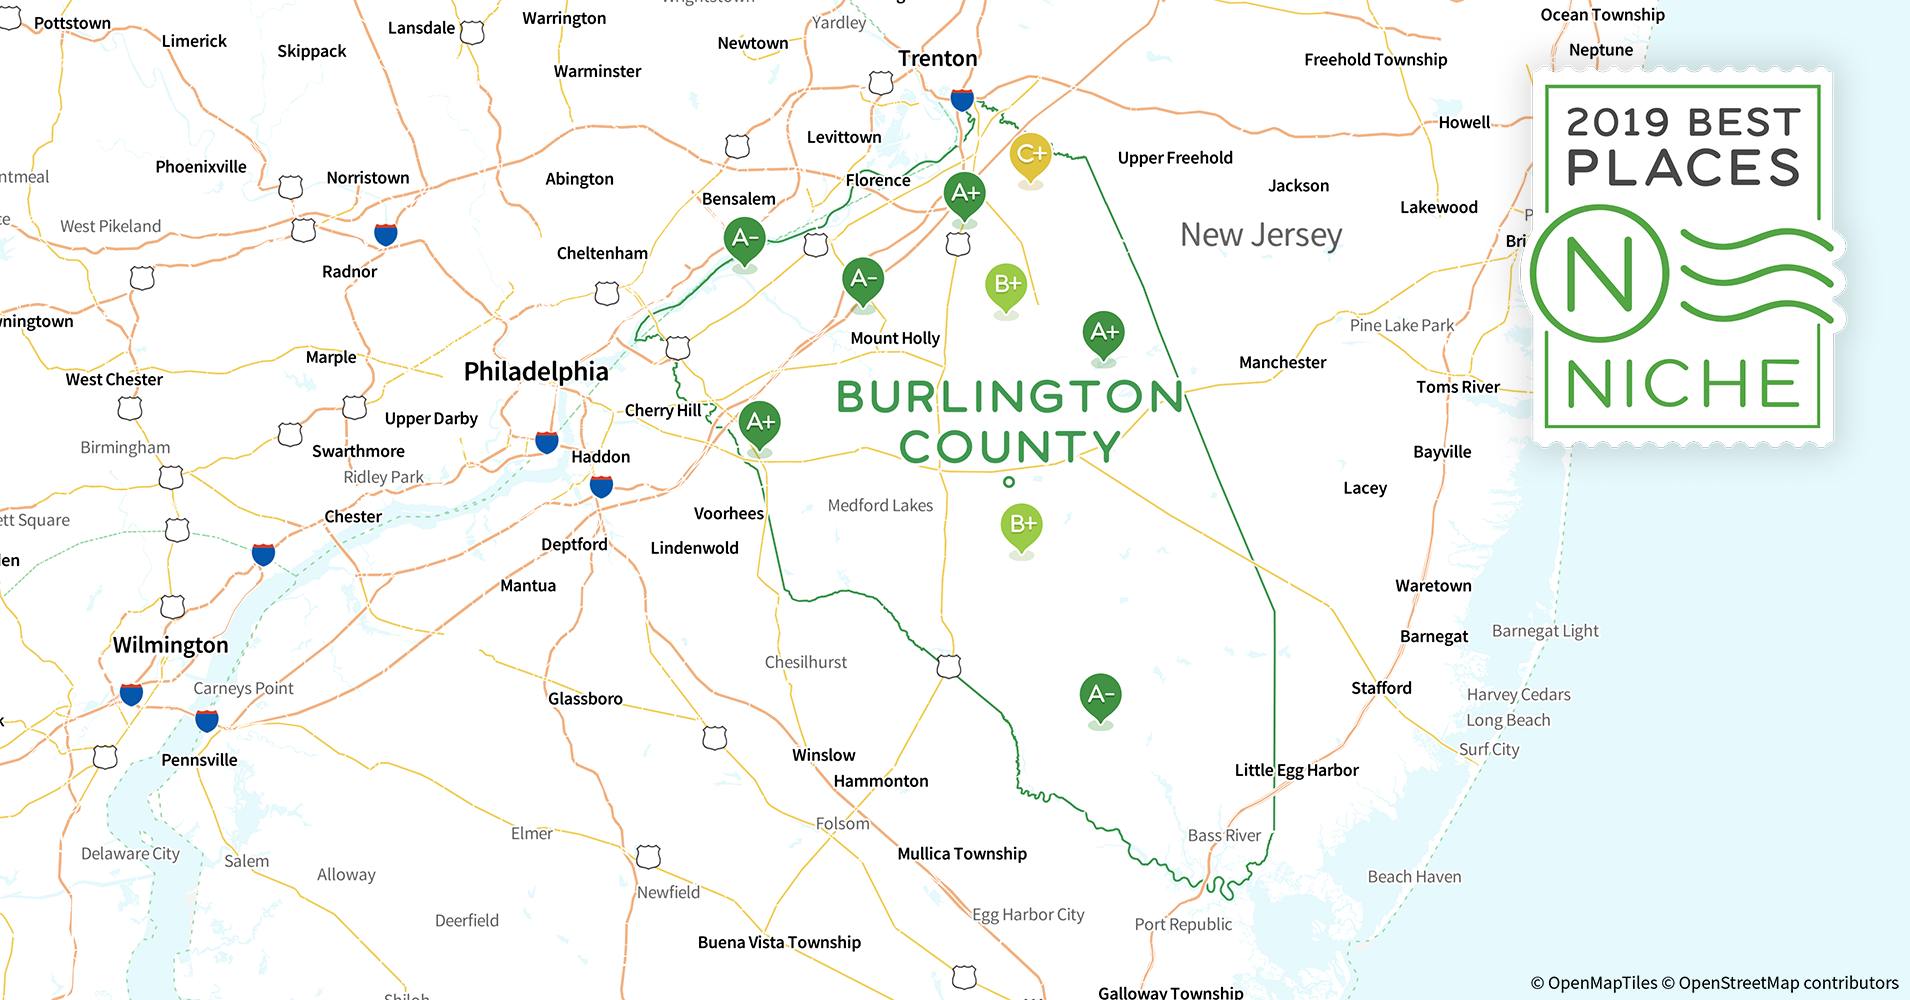 2019 Best Places to Live in Burlington County, NJ - Niche Map Burlington County Nj on cape may county, bordentown nj map, bergen county, hudson county, wharton state forest nj map, cherry hill nj map, blue anchor nj map, mercer county nj map, camden county, somerset county, somerset park nj map, gloucester county, passaic county, historic smithville nj trail map, cumberland county, mercer county, mount laurel nj map, south jersey, bergen county nj map, warren county, morris county, salem county nj map, essex county, gloucester county nj map, vista center nj map, westampton nj map, lakehurst nj map, ocean county, middlesex county, union county, cumberland county nj map, hunterdon county, monmouth county nj map, stafford county nj map, atlantic county nj map, atlantic county, ocean county nj map, south bound brook nj map, monmouth county,